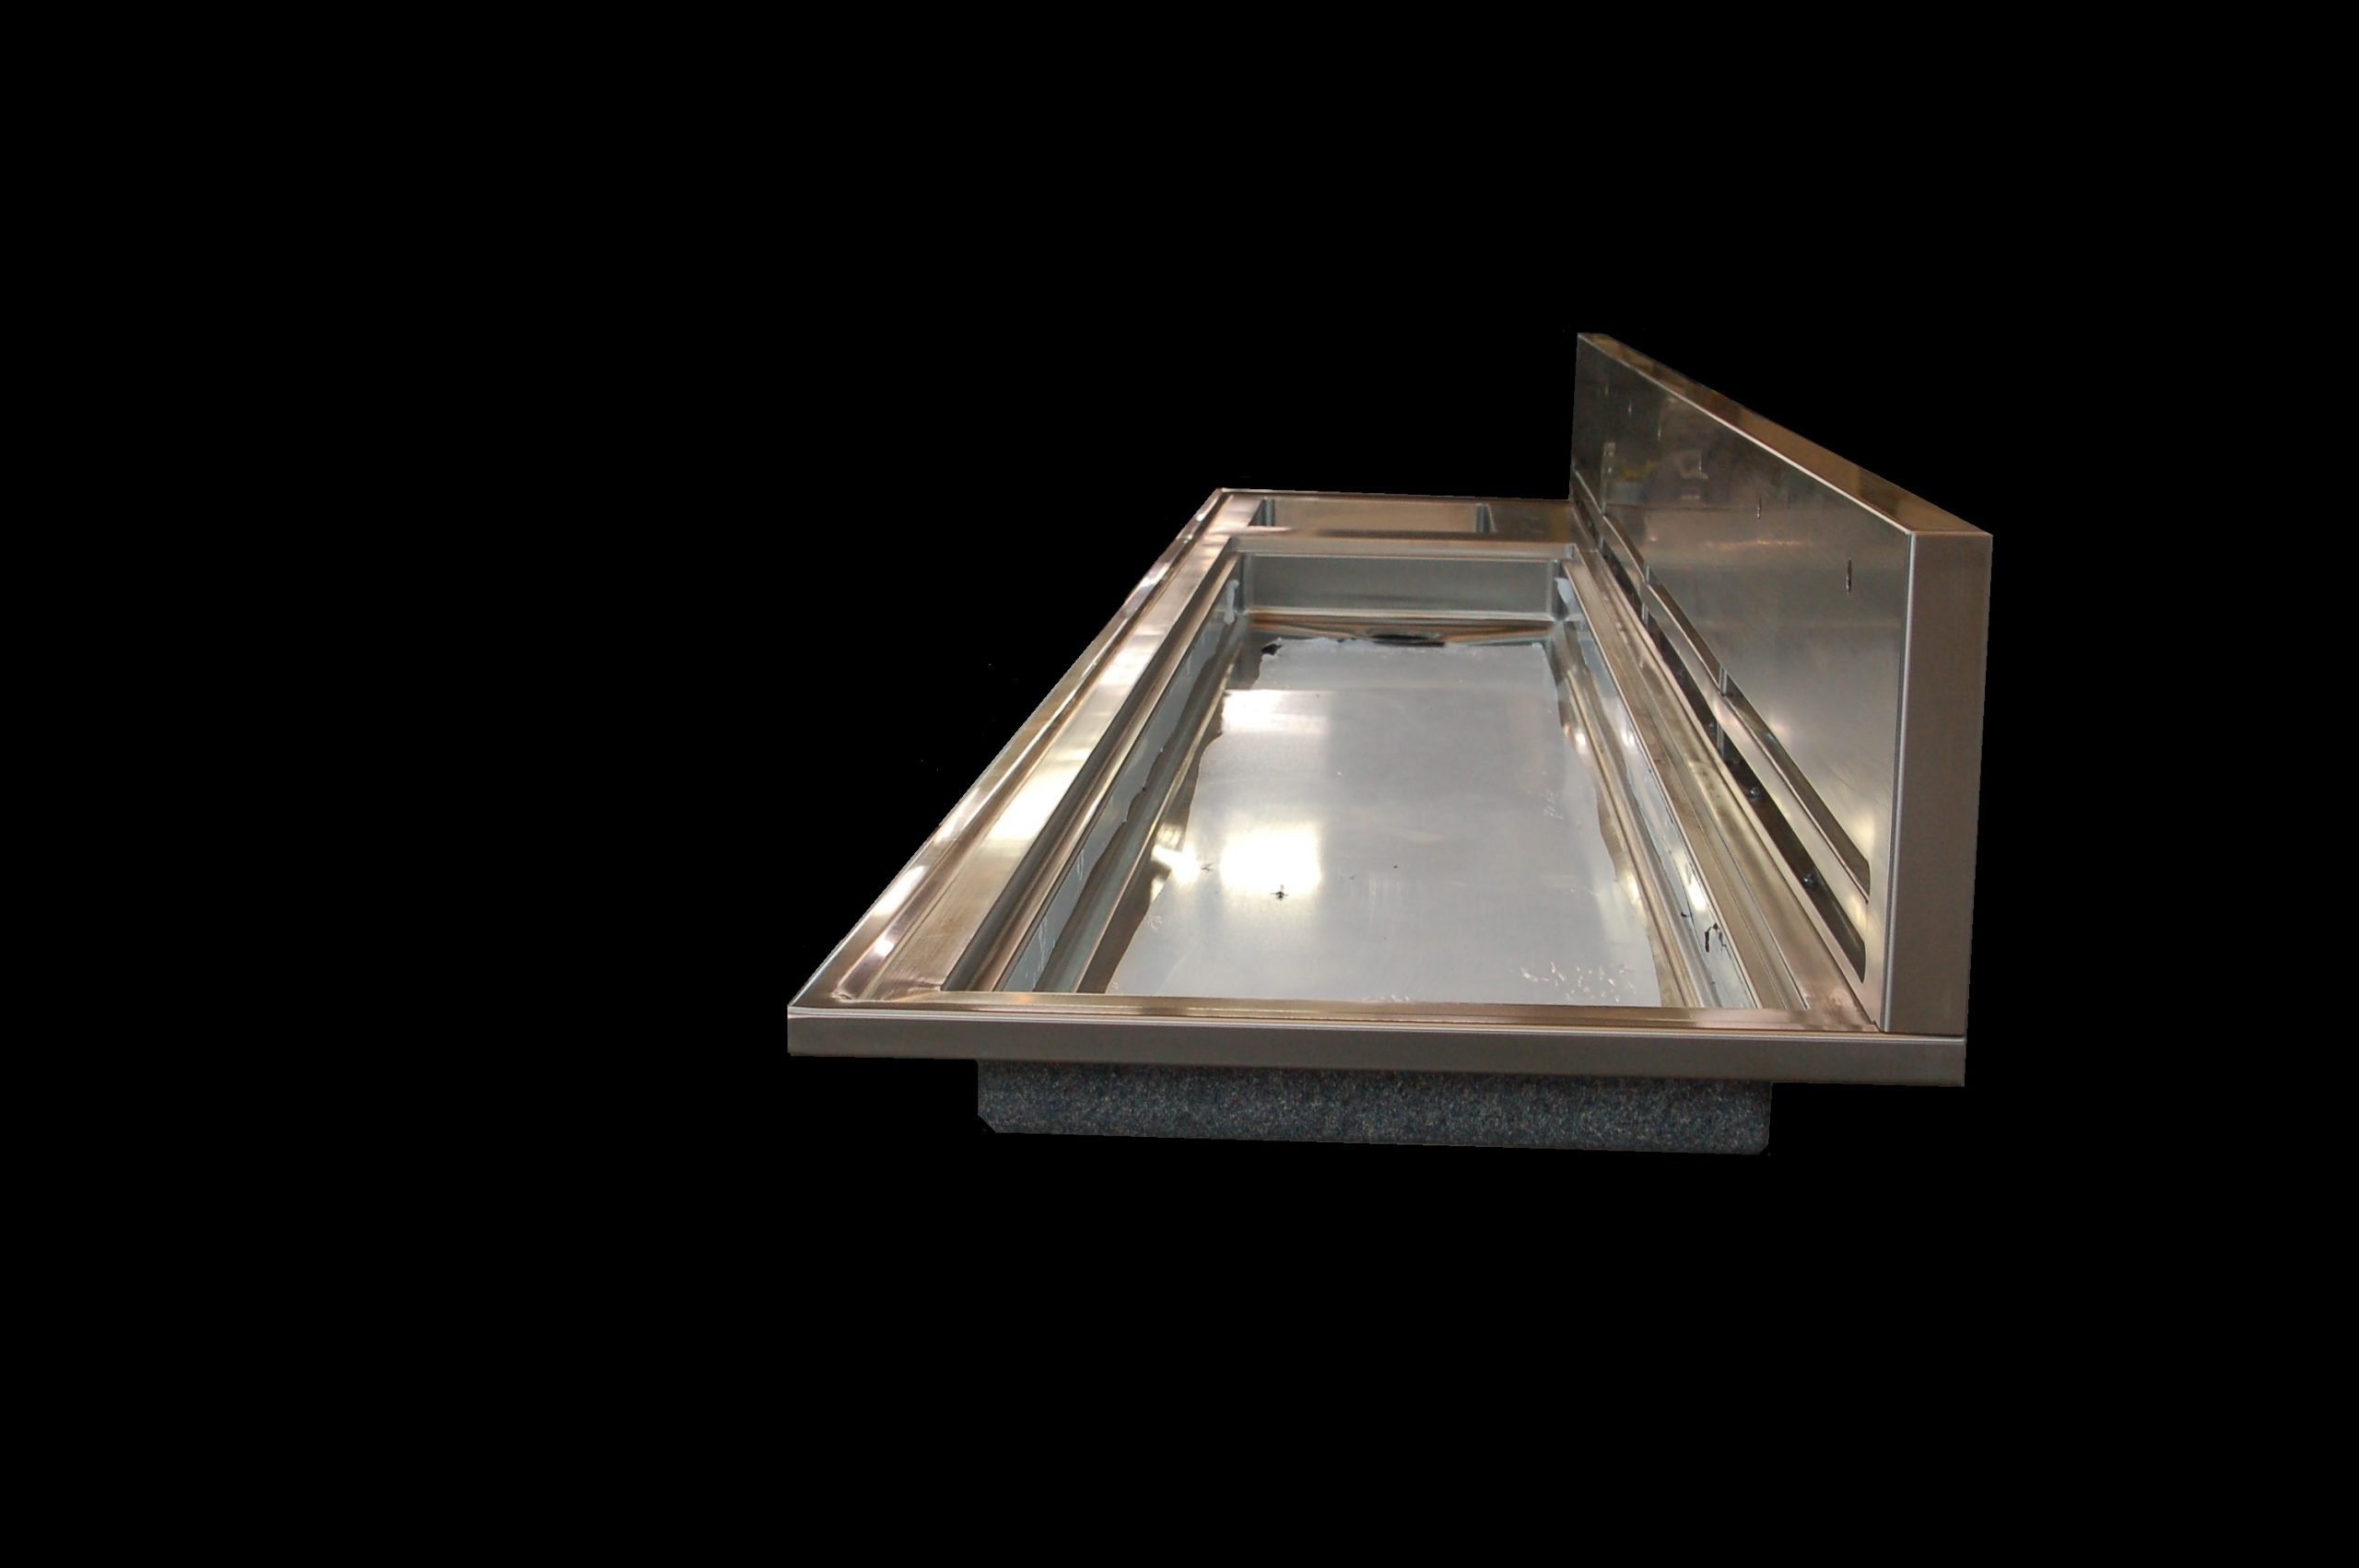 vented top with integral trough and sink custom stainless steel